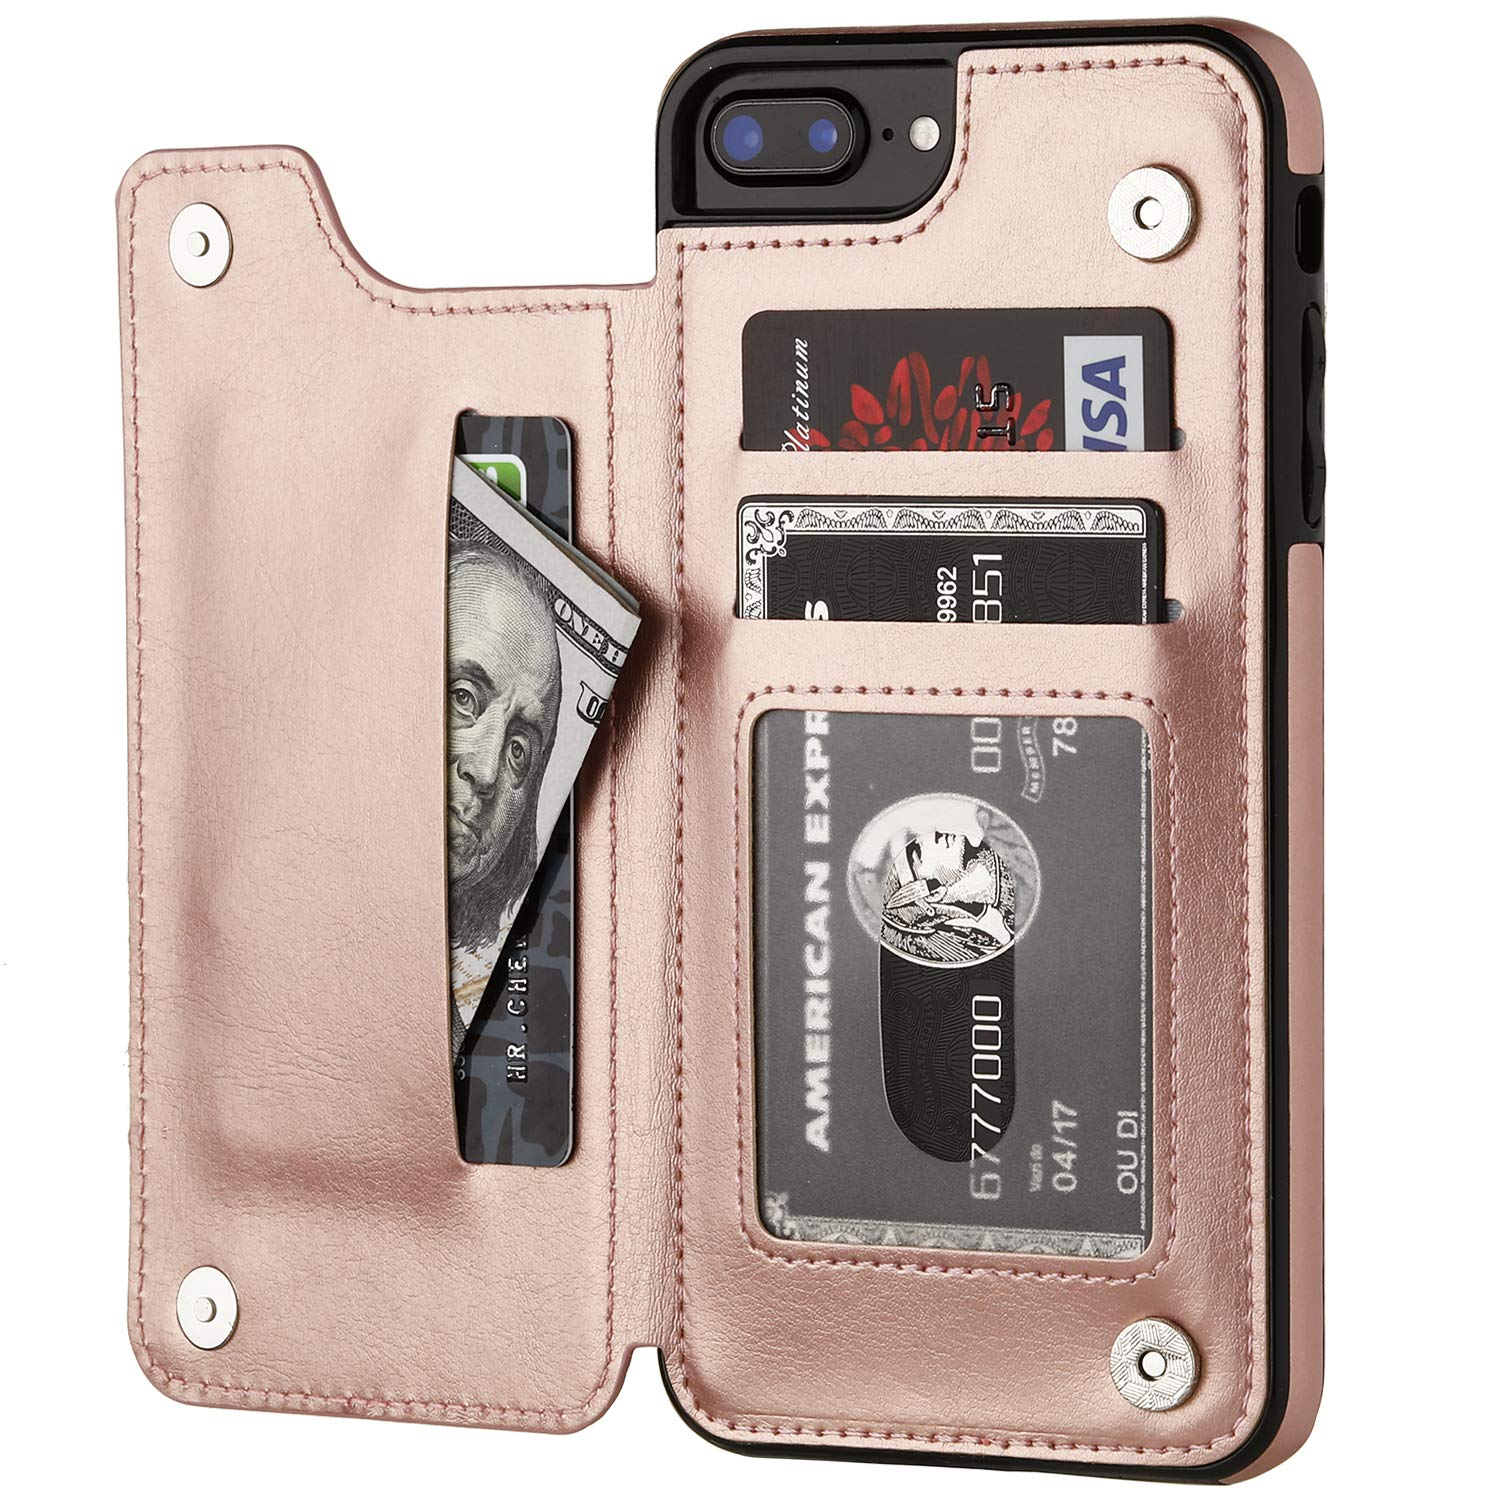 iPhone 7 Plus iPhone 8 Plus Wallet Case with Card Holder,OT ONETOP Premium PU Leather Kickstand Card Slots Case,Double Magnetic Clasp and Durable Shockproof Cover 5.5 Inch(Rose Gold) by OT ONETOP